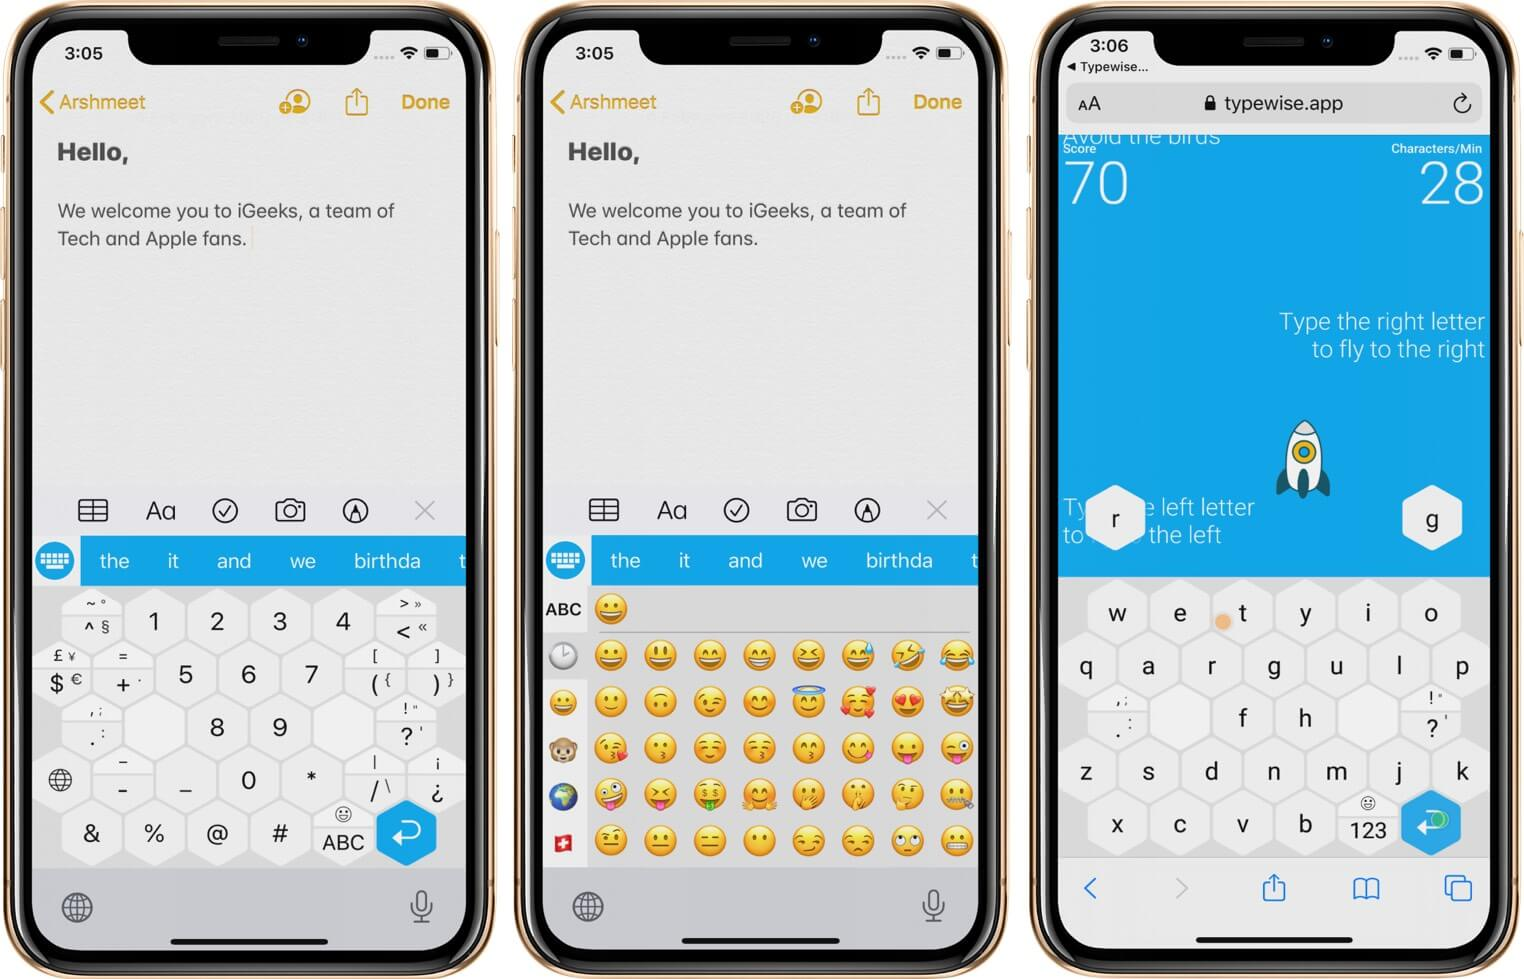 Use Different Keyboards in Typewise Keyboard App on iPhone